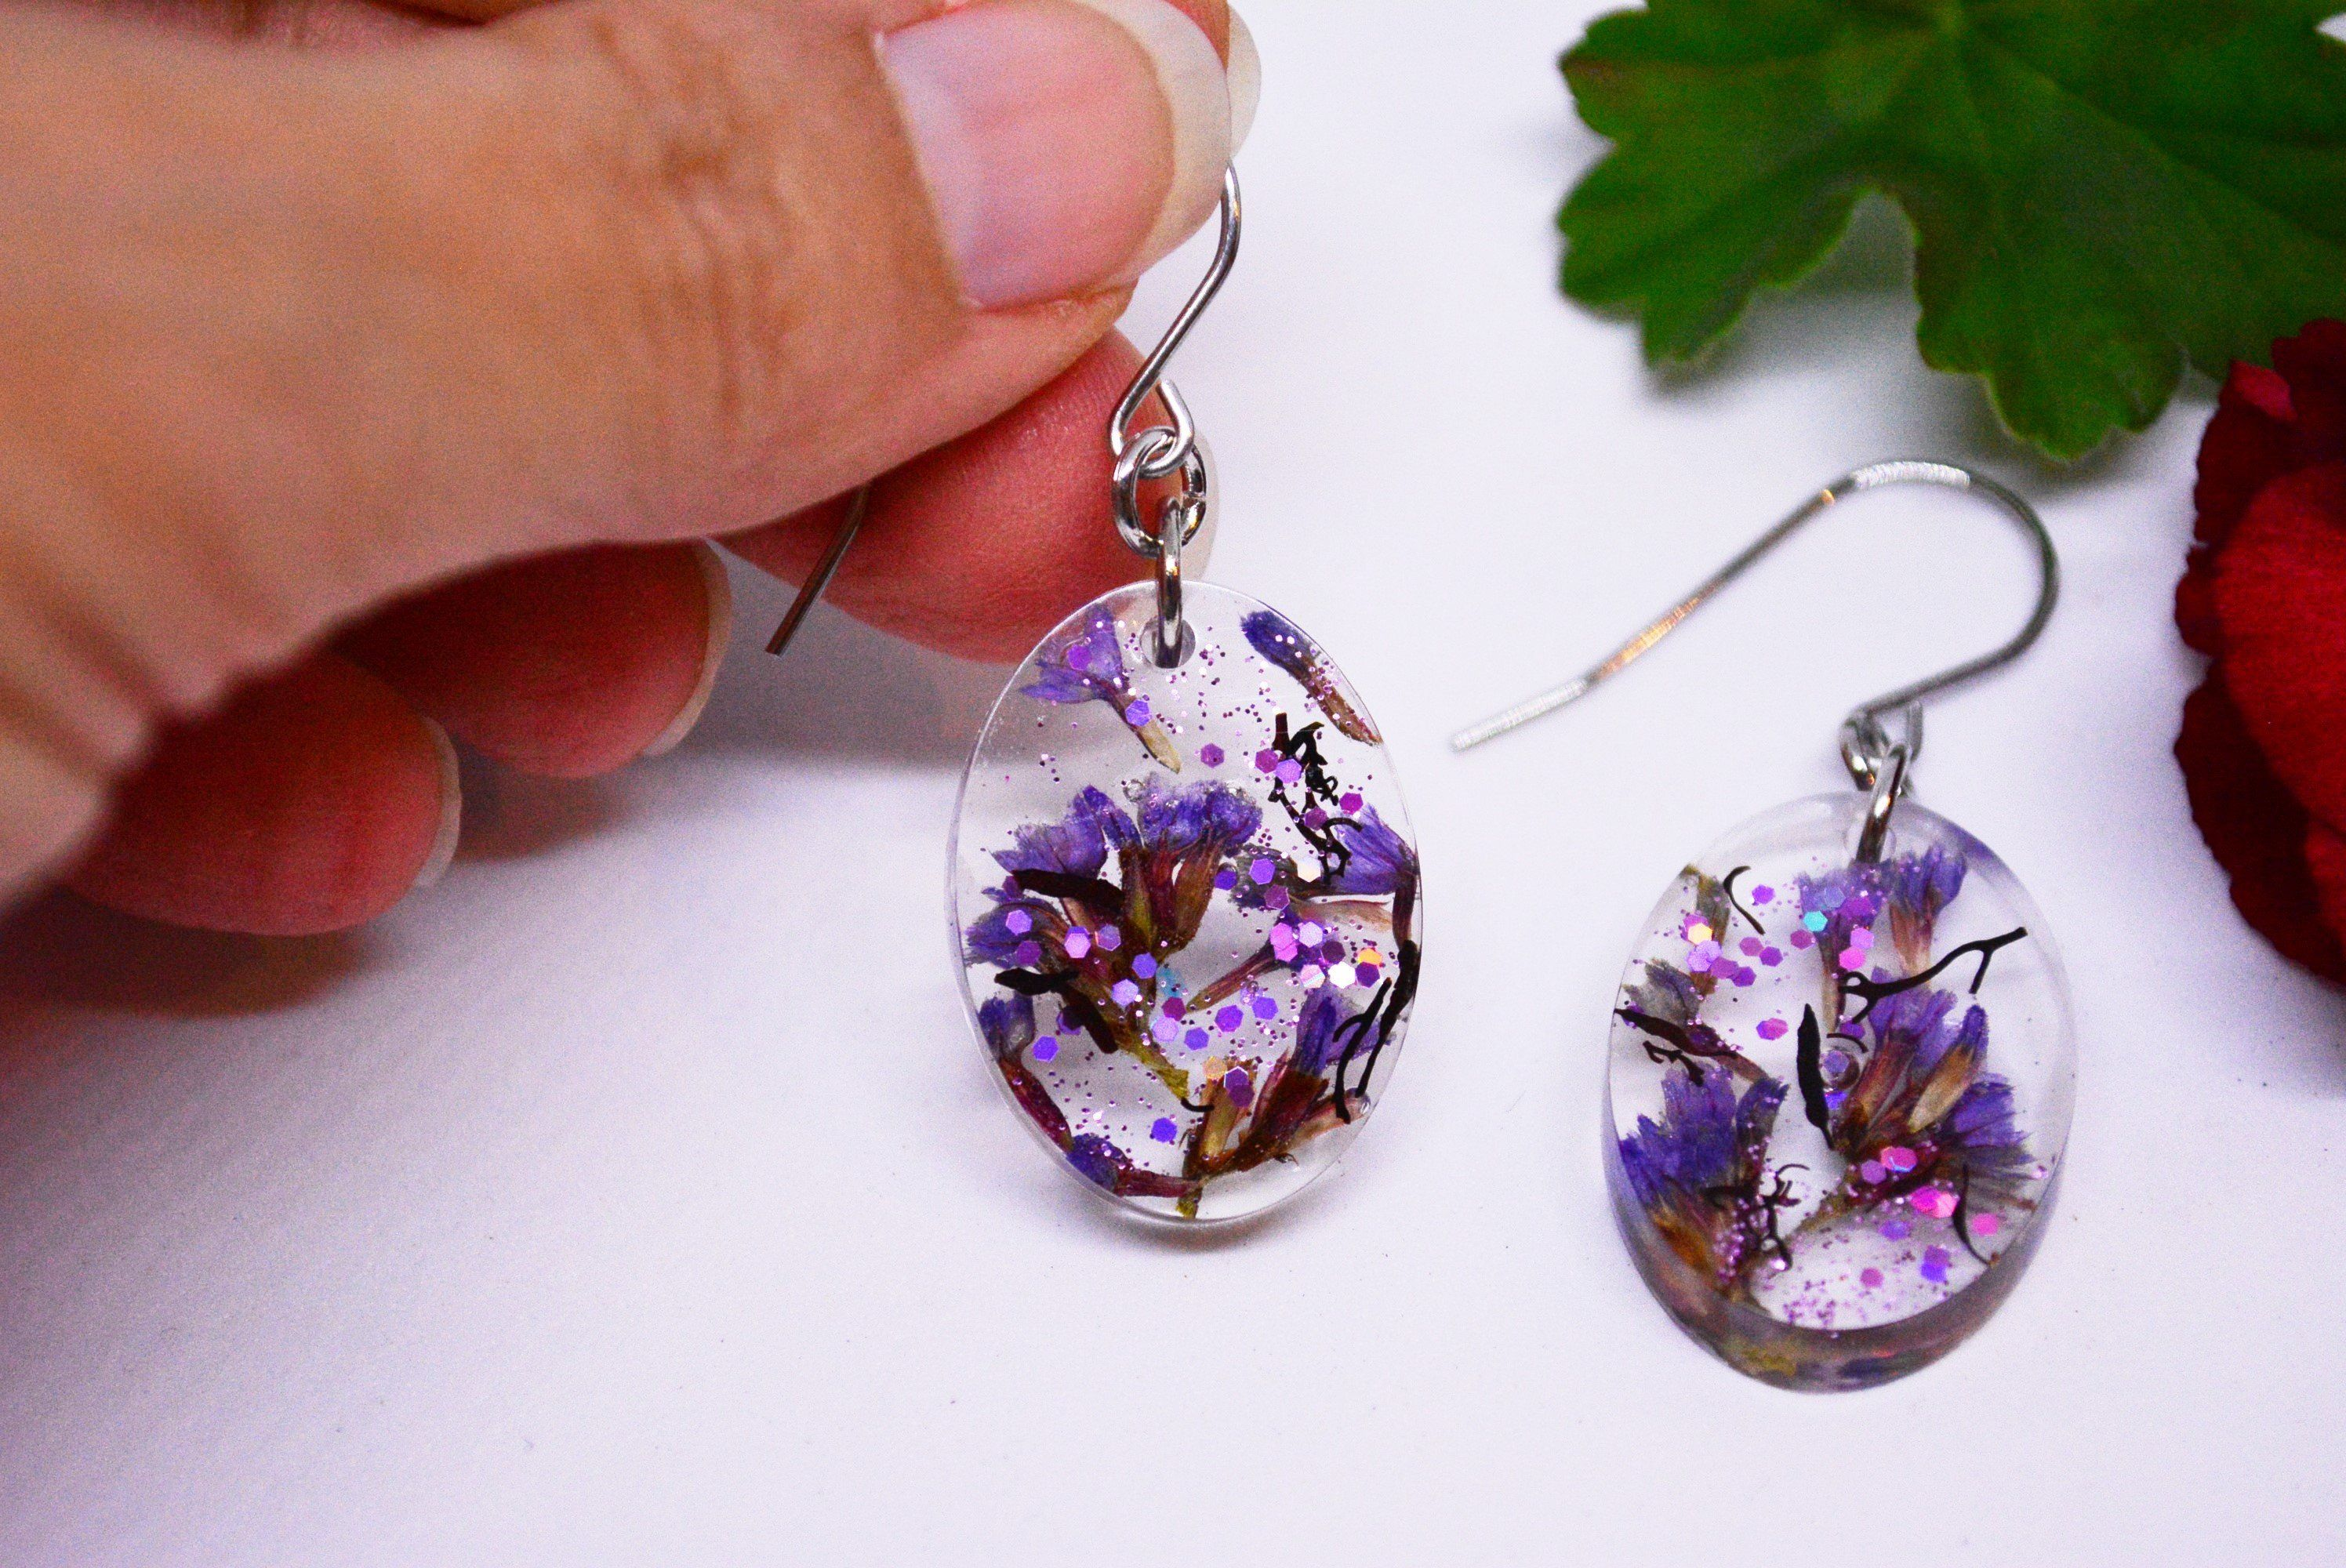 19+ How to sell resin jewelry information